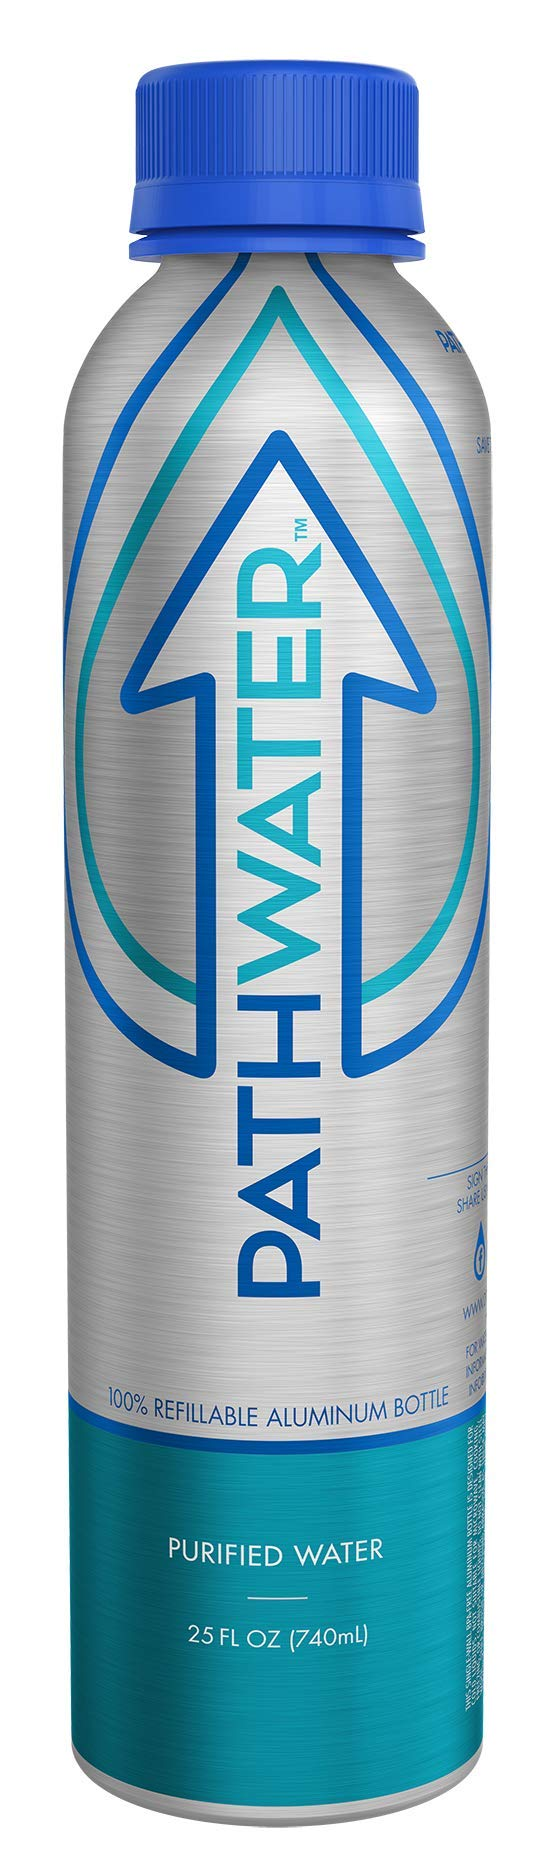 PATHWATER Purified Bottled Water in BPA Free Reusable & Refillable Aluminum Bottle - 740 ml - 25 ounces (1 Bottle)